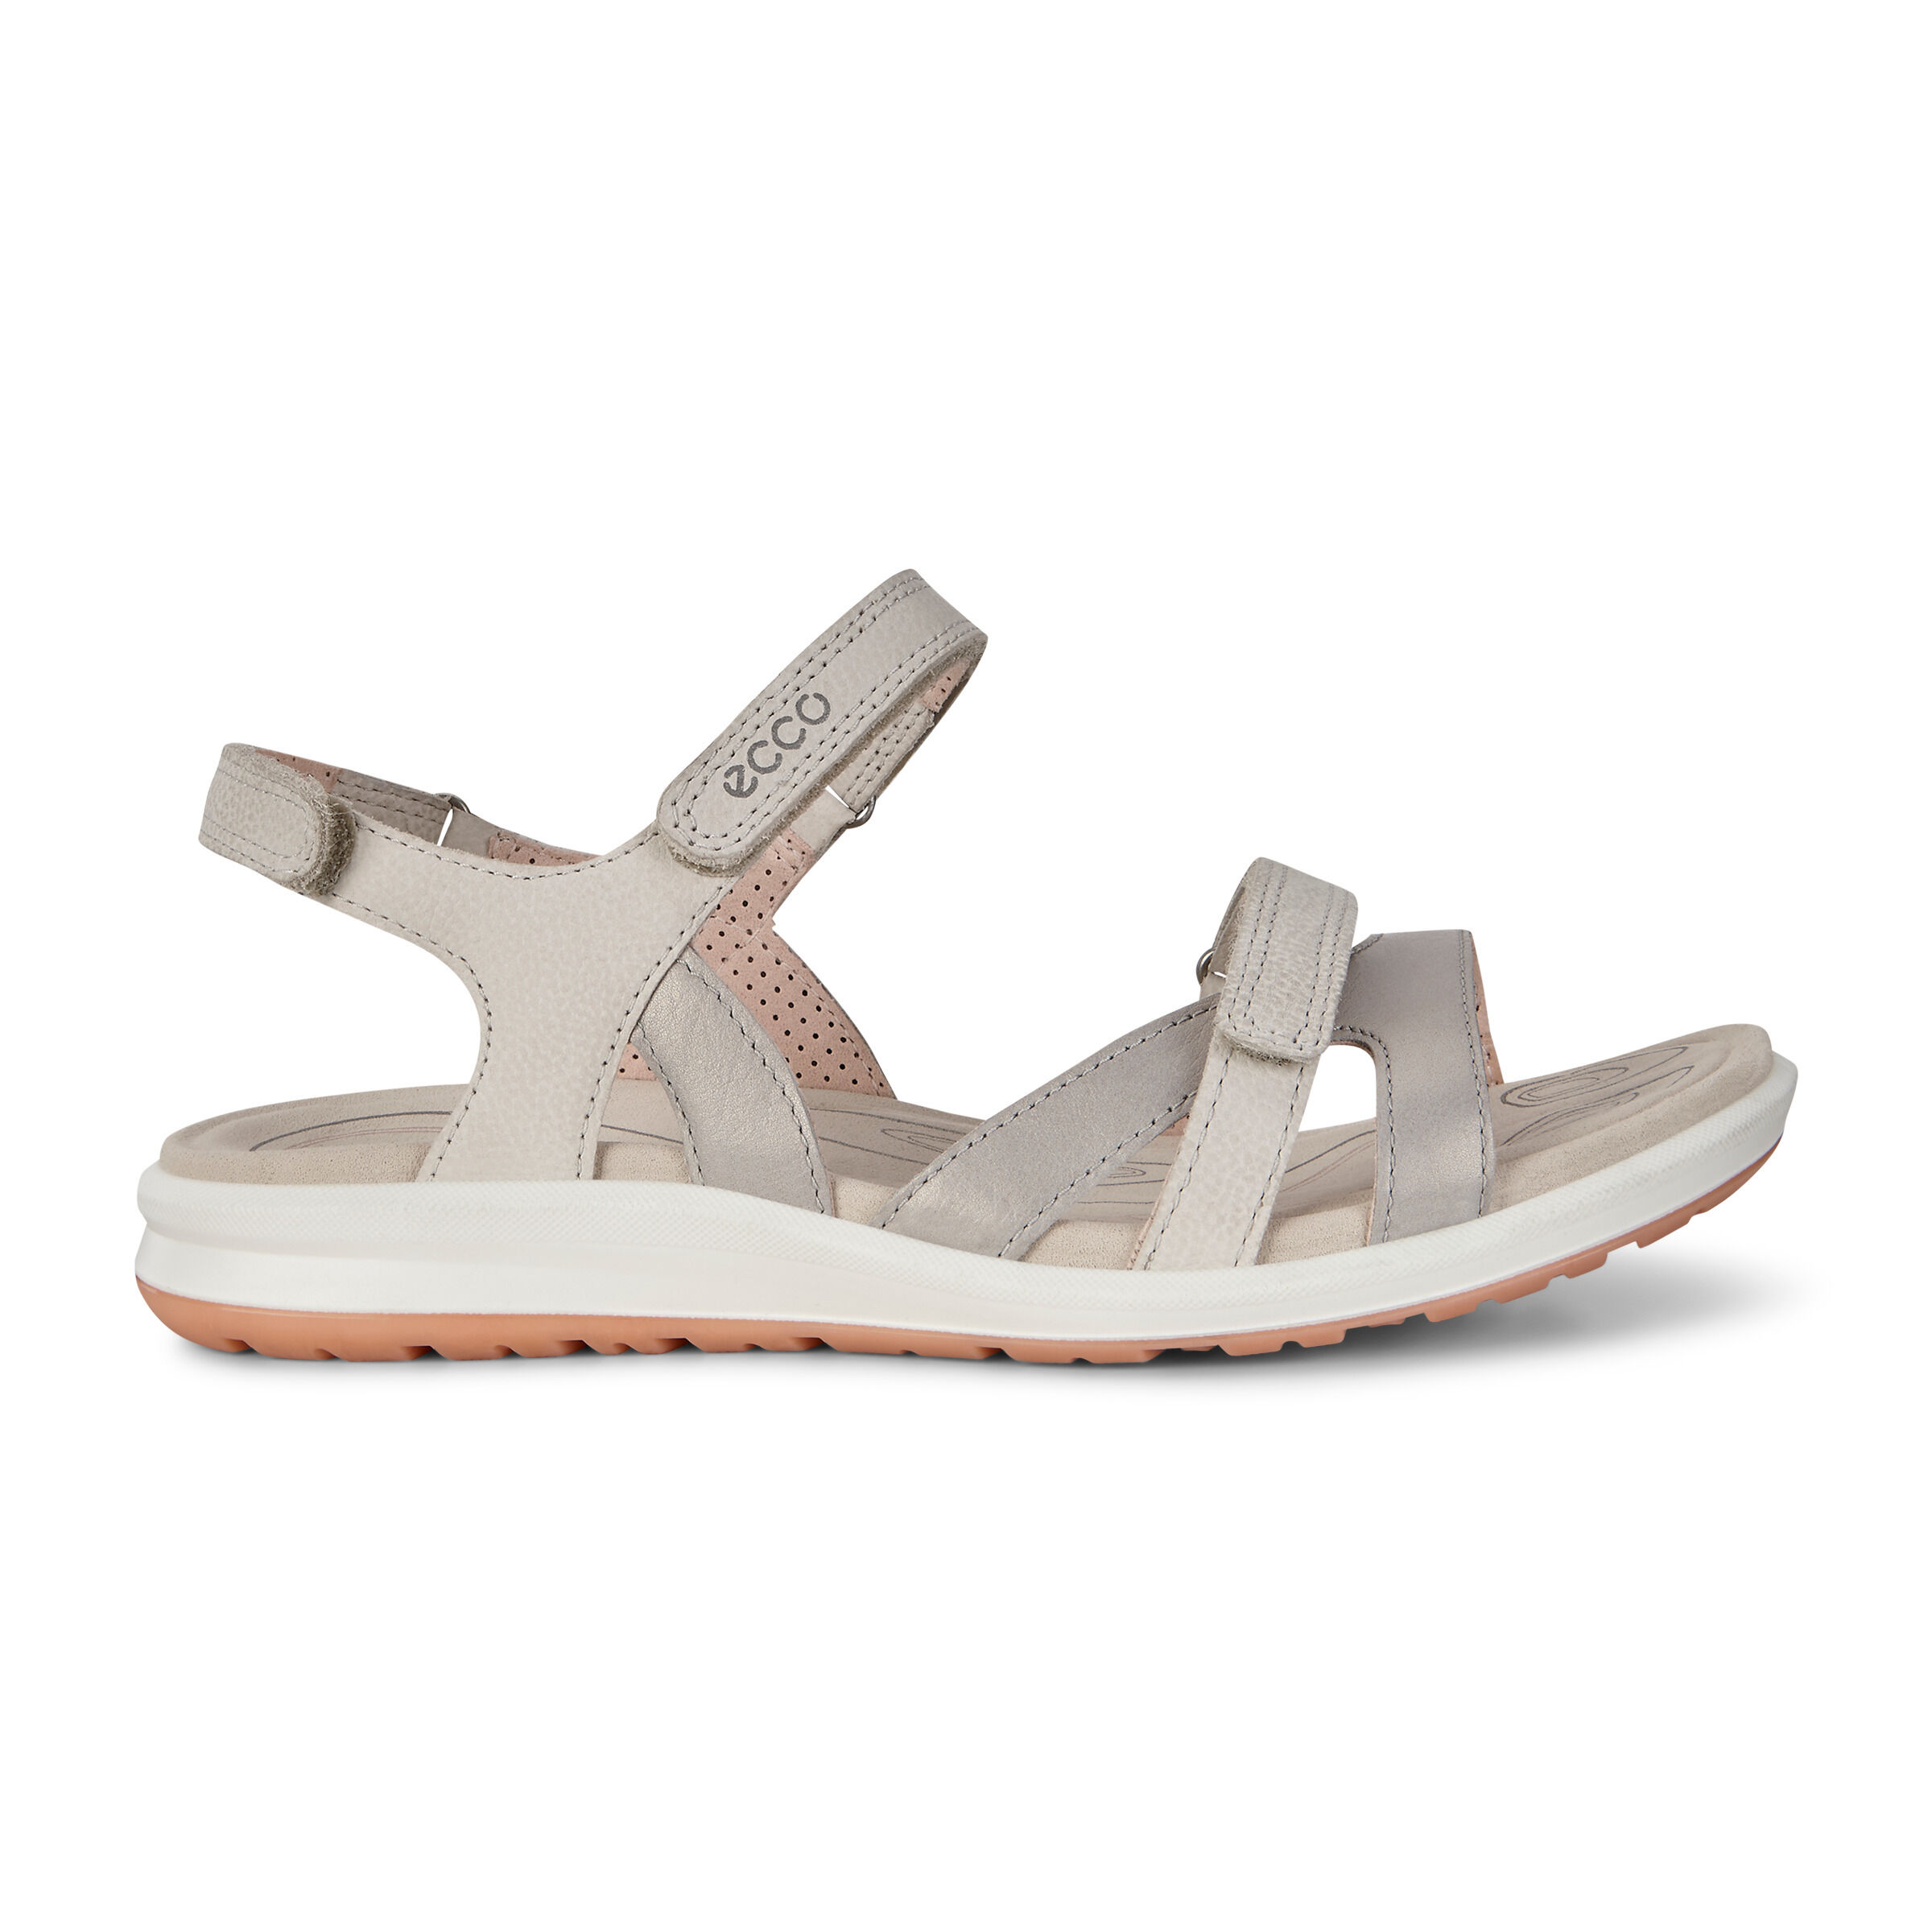 Cruise II Women's Sandals | Hiking Sandals | ECCO® Shoes